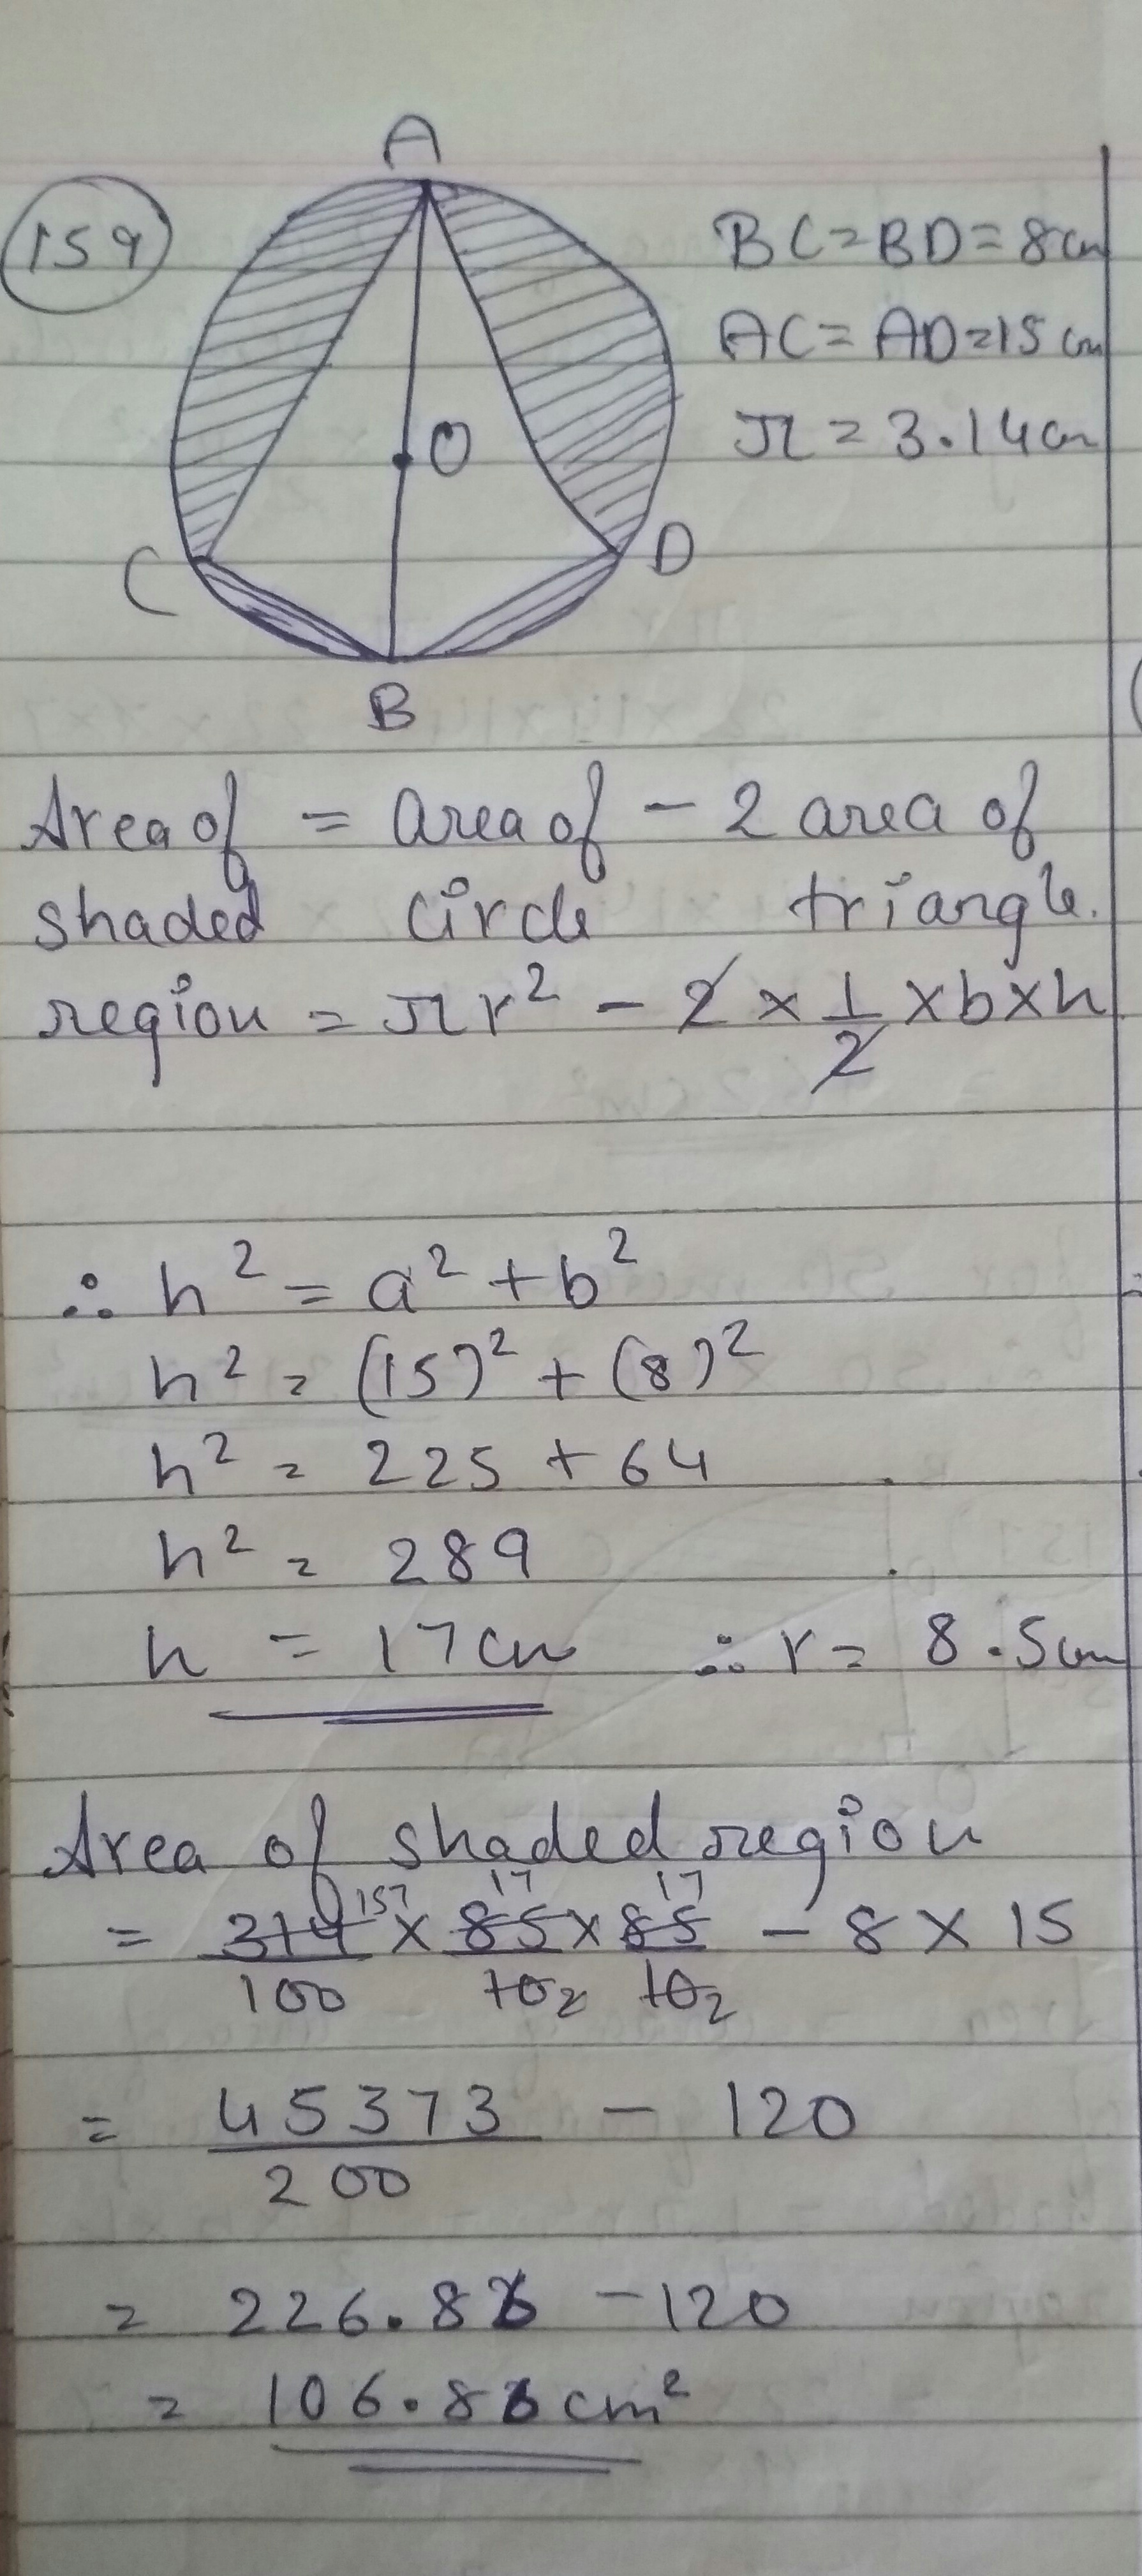 Find The Area Of Shaded Region In Figure If Bc Bd 8cm And